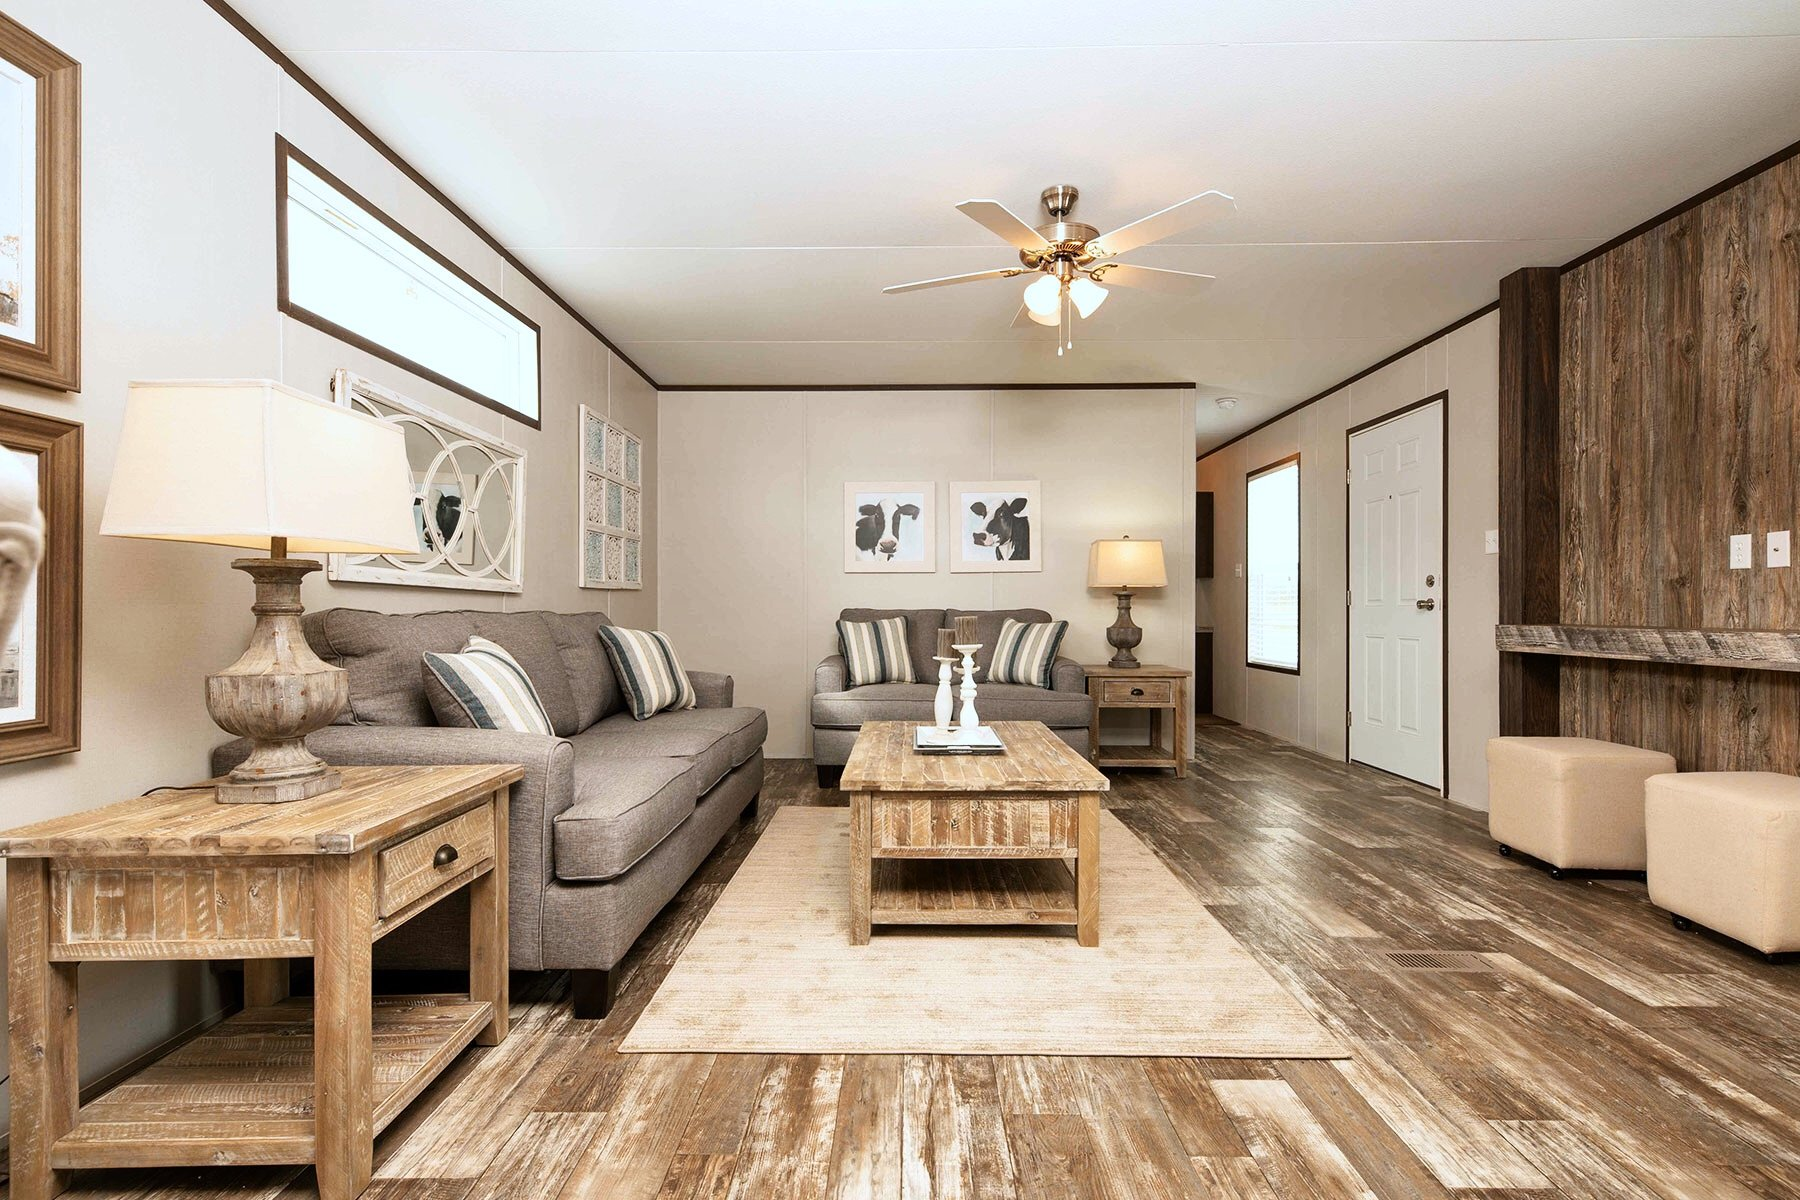 Featured Single-wide Manufactured Home of the Week